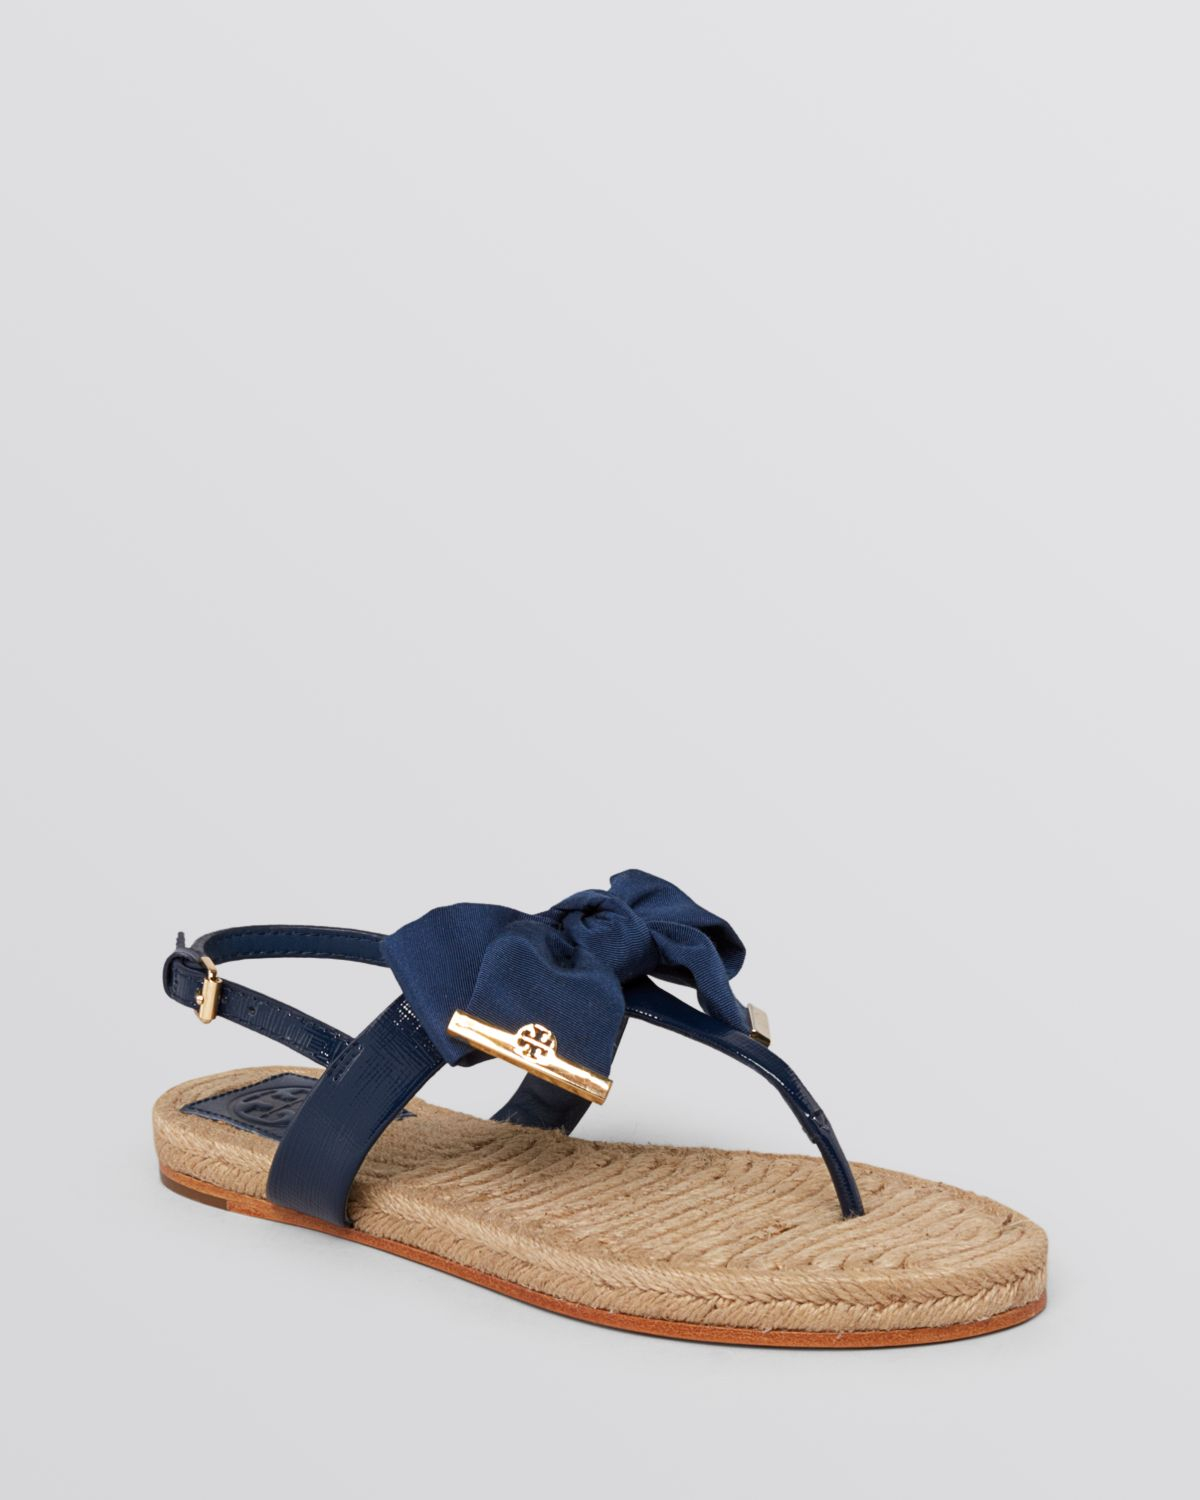 8537e504e Tory Burch Flat Thong Sandals Penny Bow in Blue - Lyst